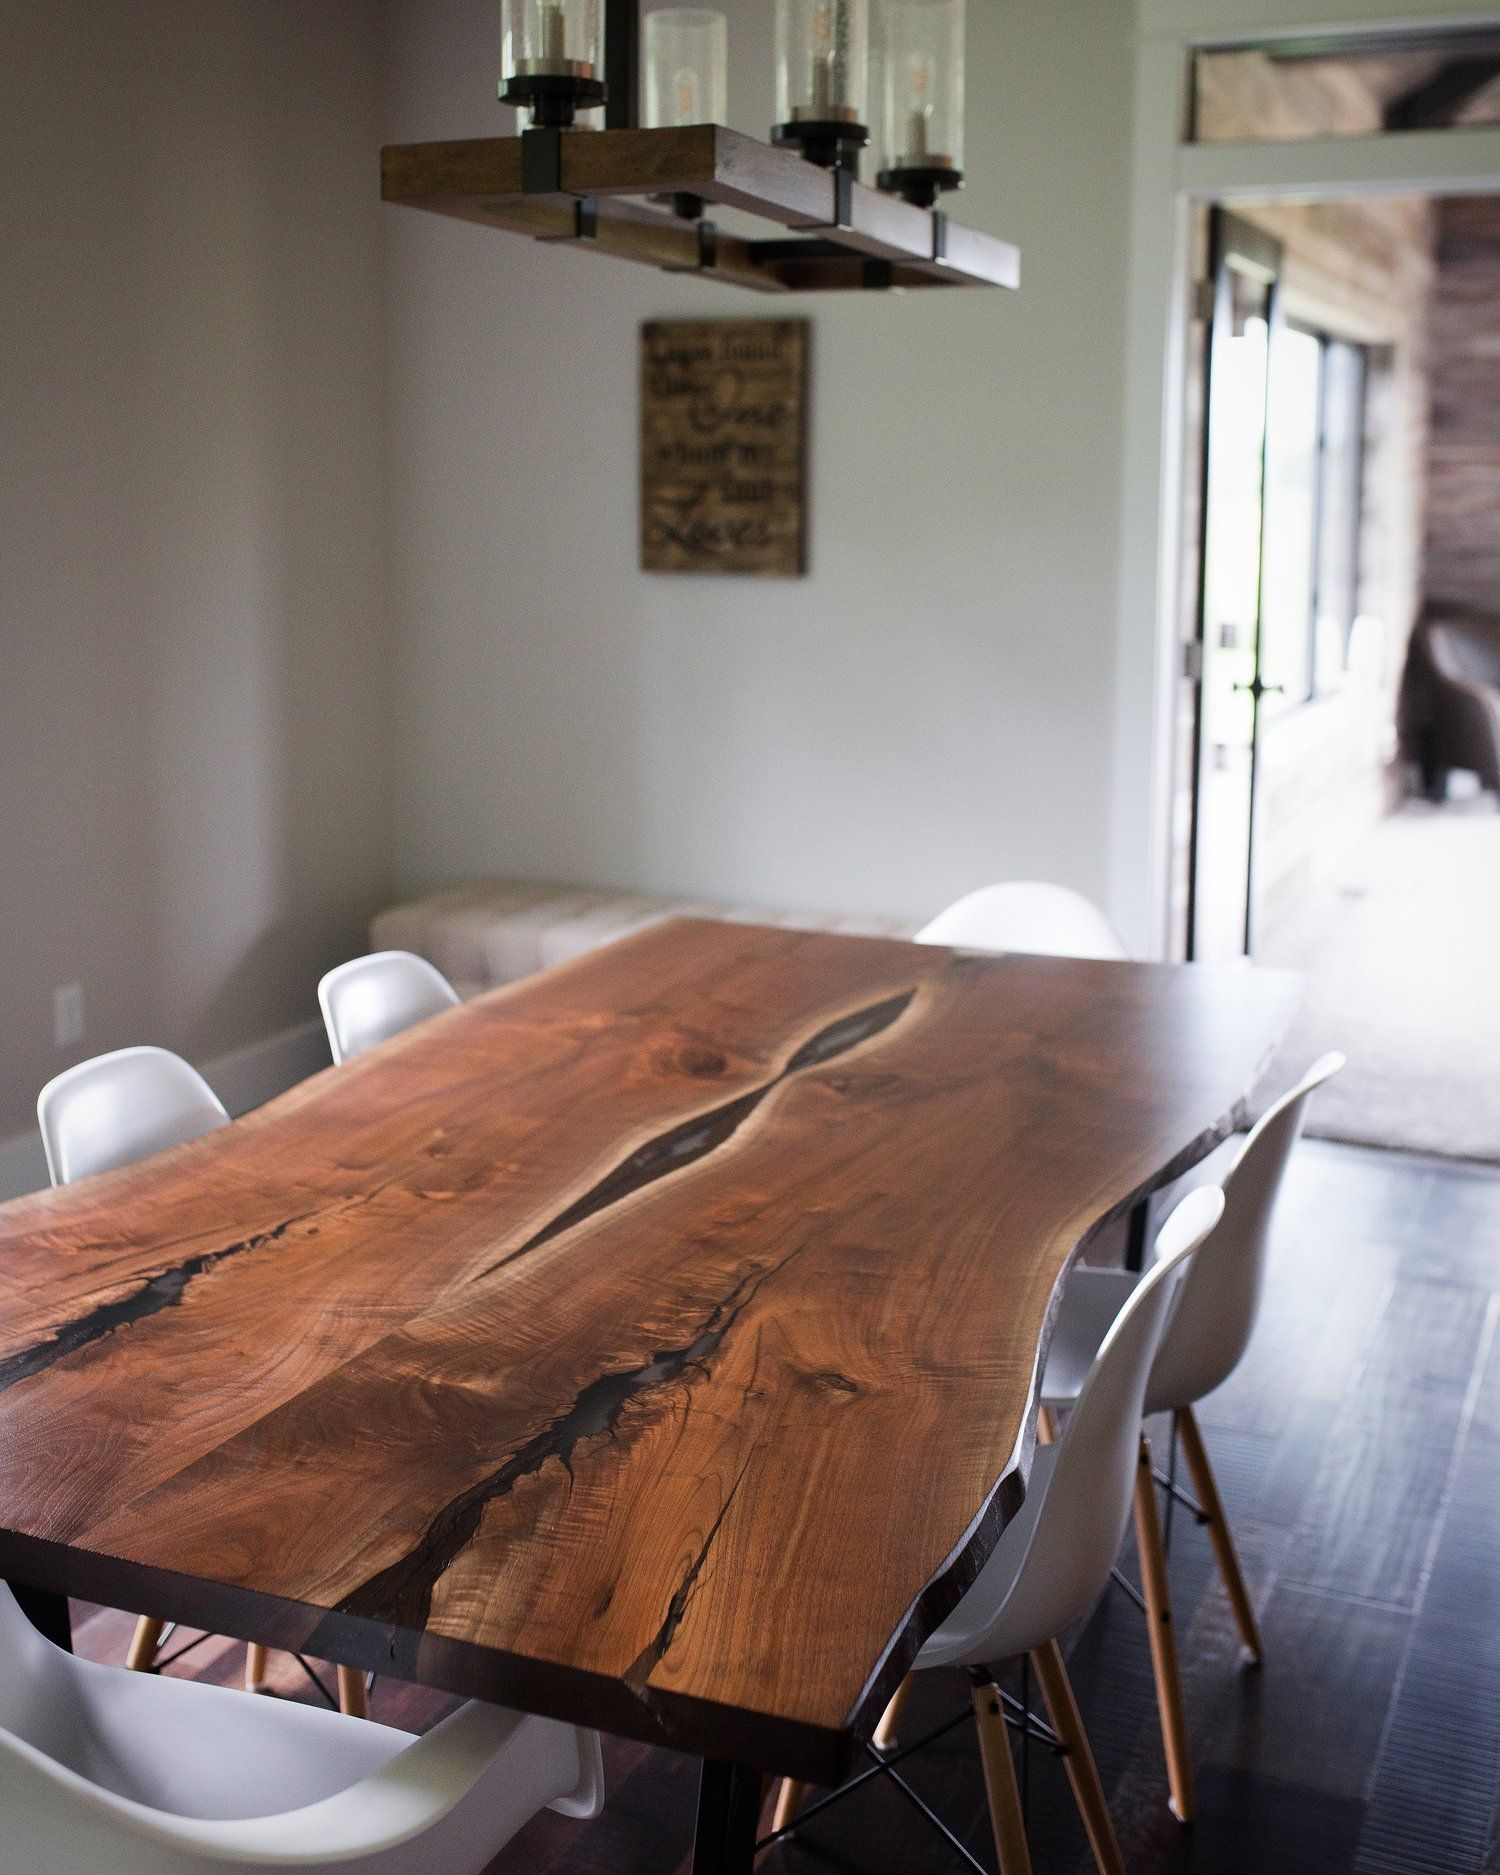 Luxedge Furniture Co Epoxy Tables River Tables Live Edge Tables Dining Table Coffee Tables Reclaimed Tables Walnut Dining Table Live Edge Dining Table Dining Room Table